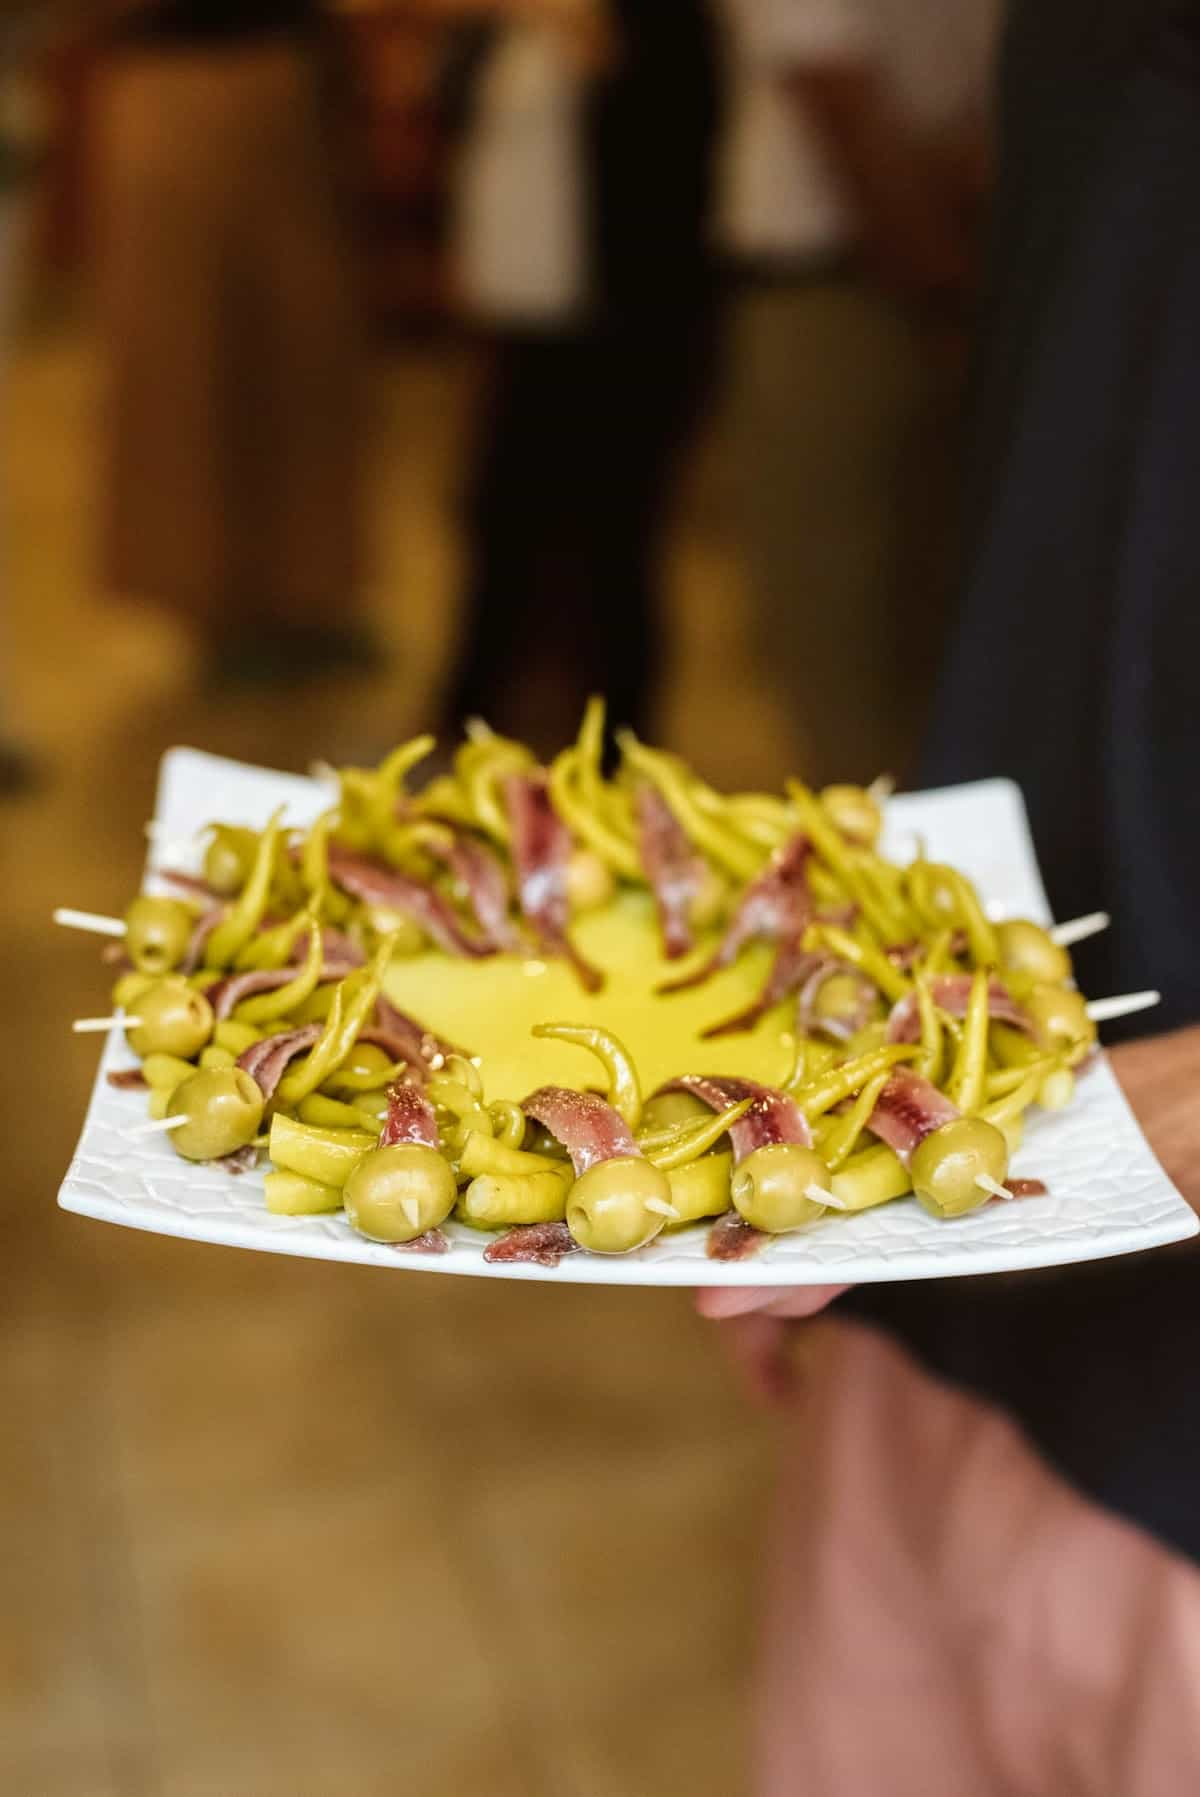 Skewers, or pintxos, of anchovies, peppers, and olives arranged on a plate.